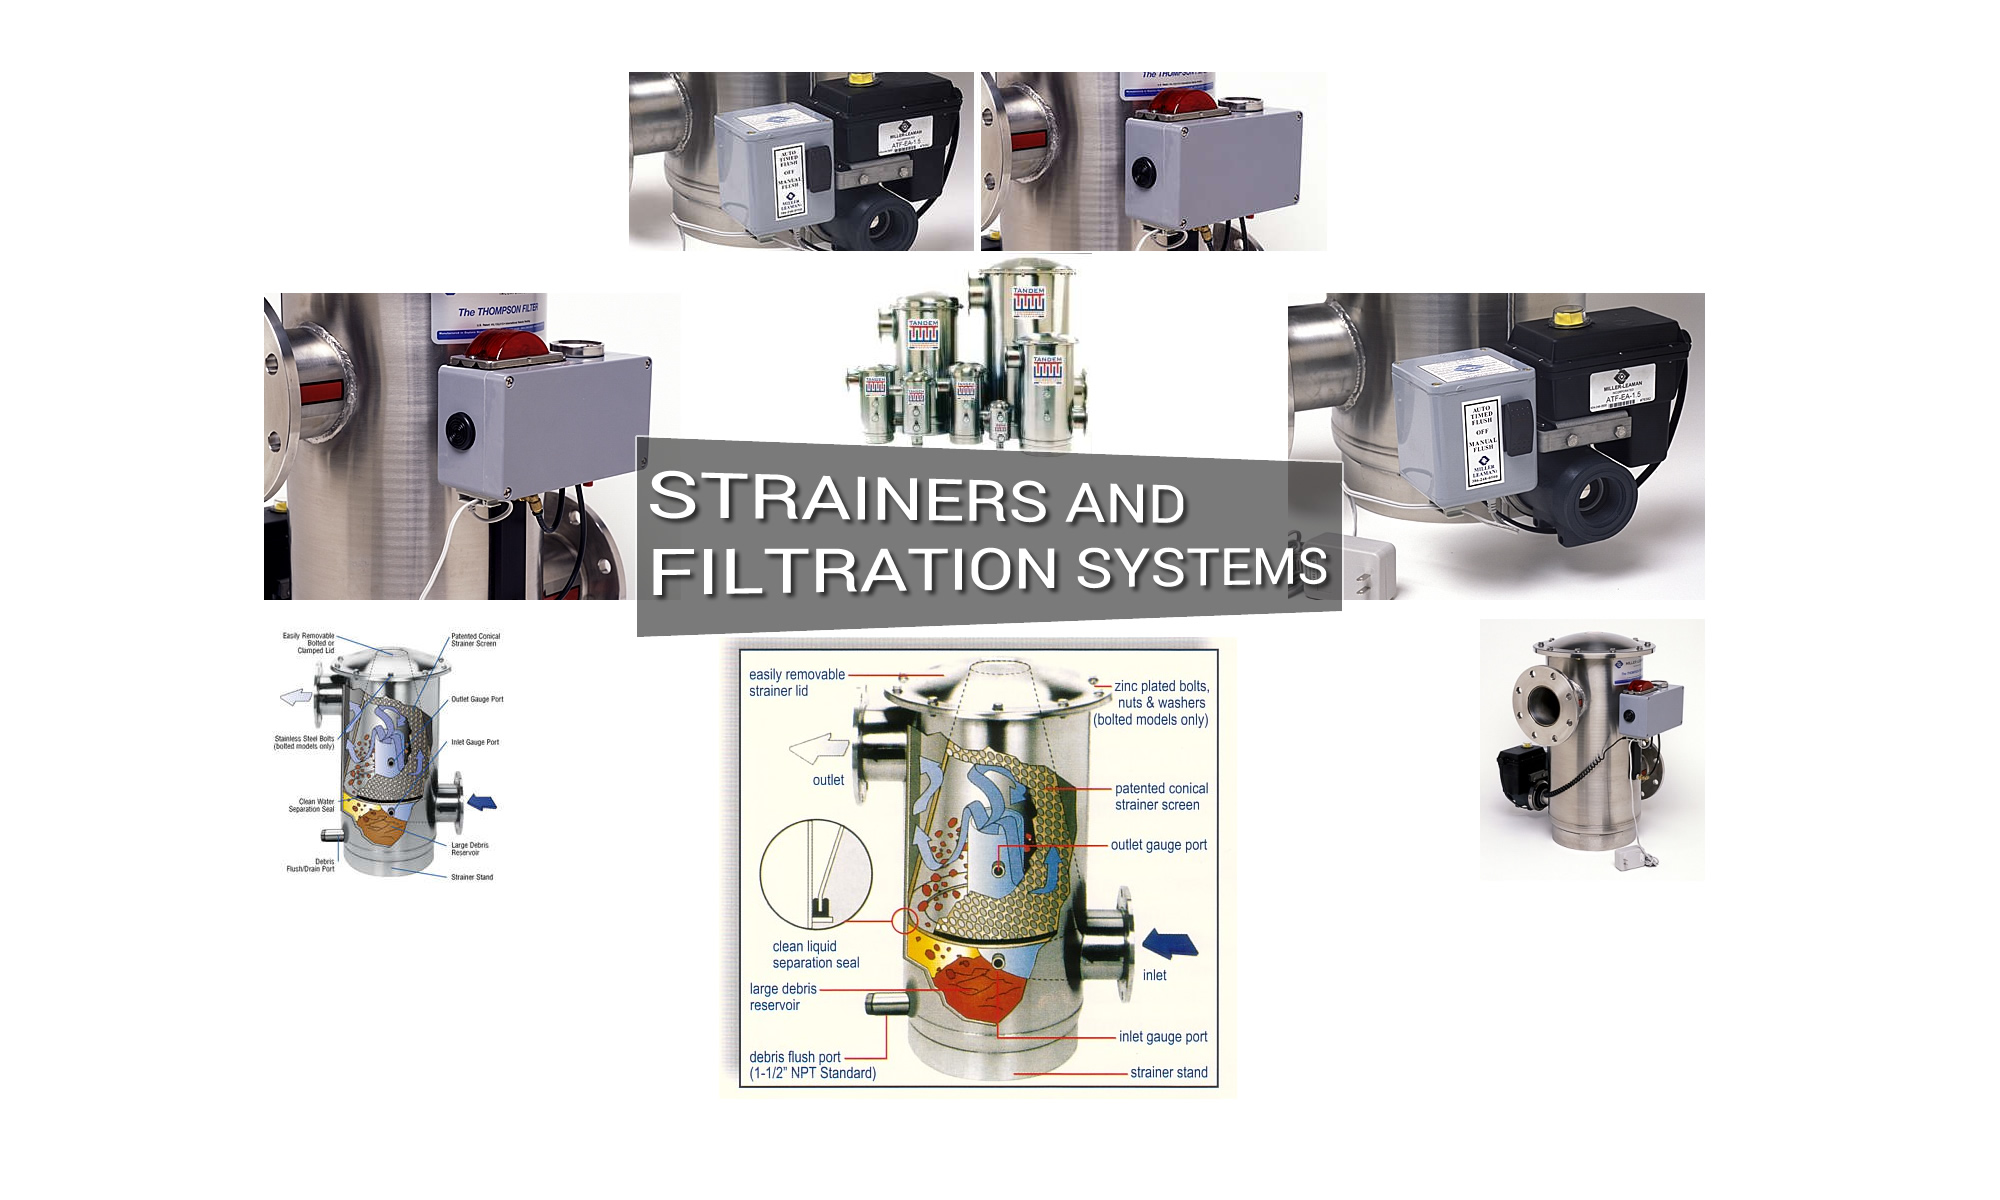 Strainers and Filtration Systems